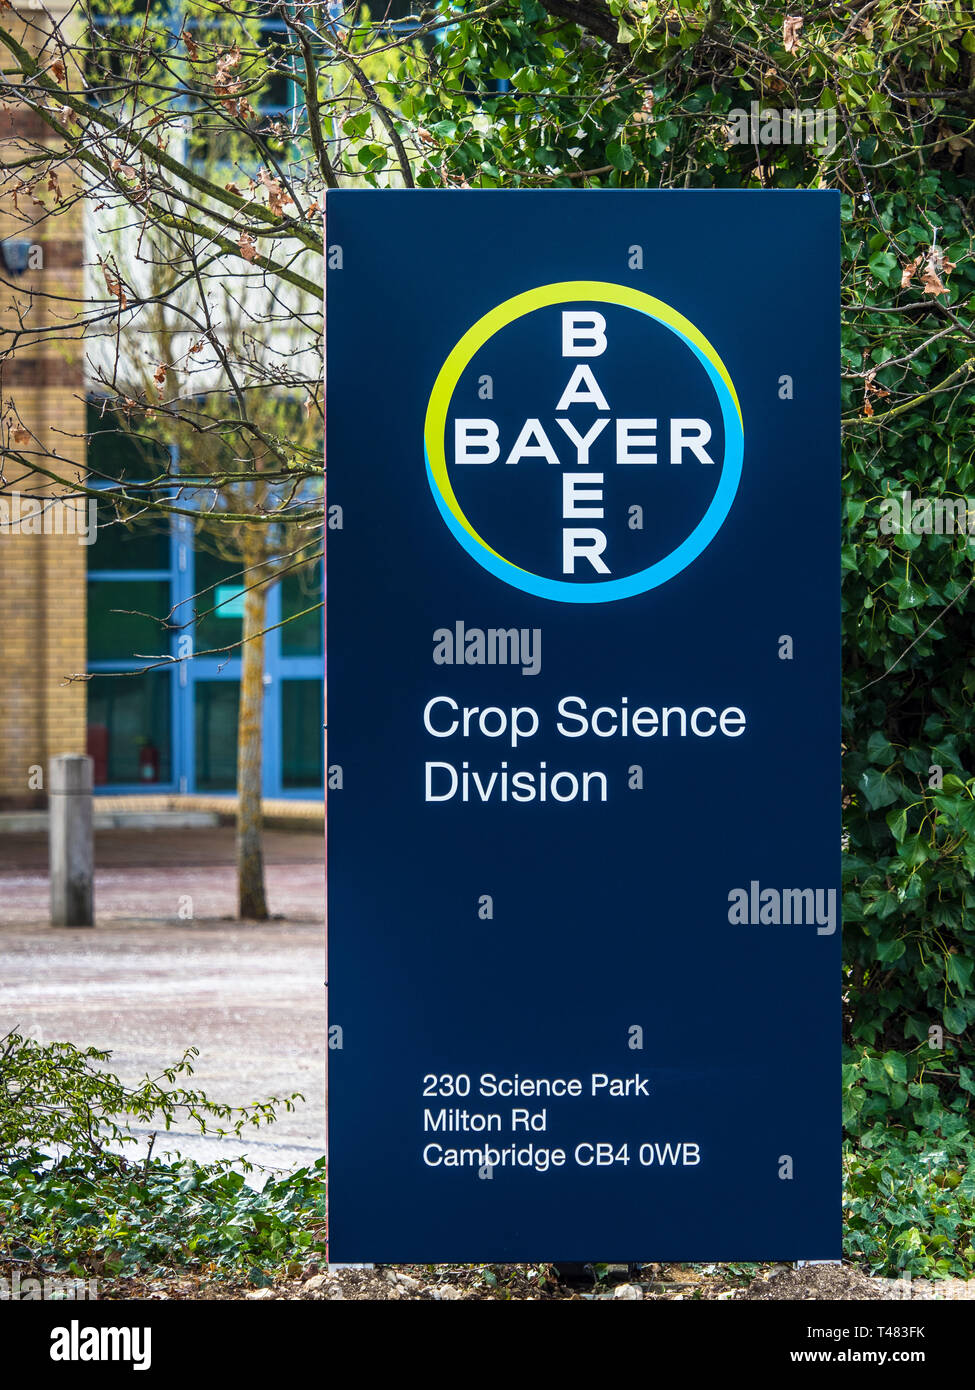 Bayer Crop Science Division facility on the Cambridge Science Park, Cambridge UK - Stock Image